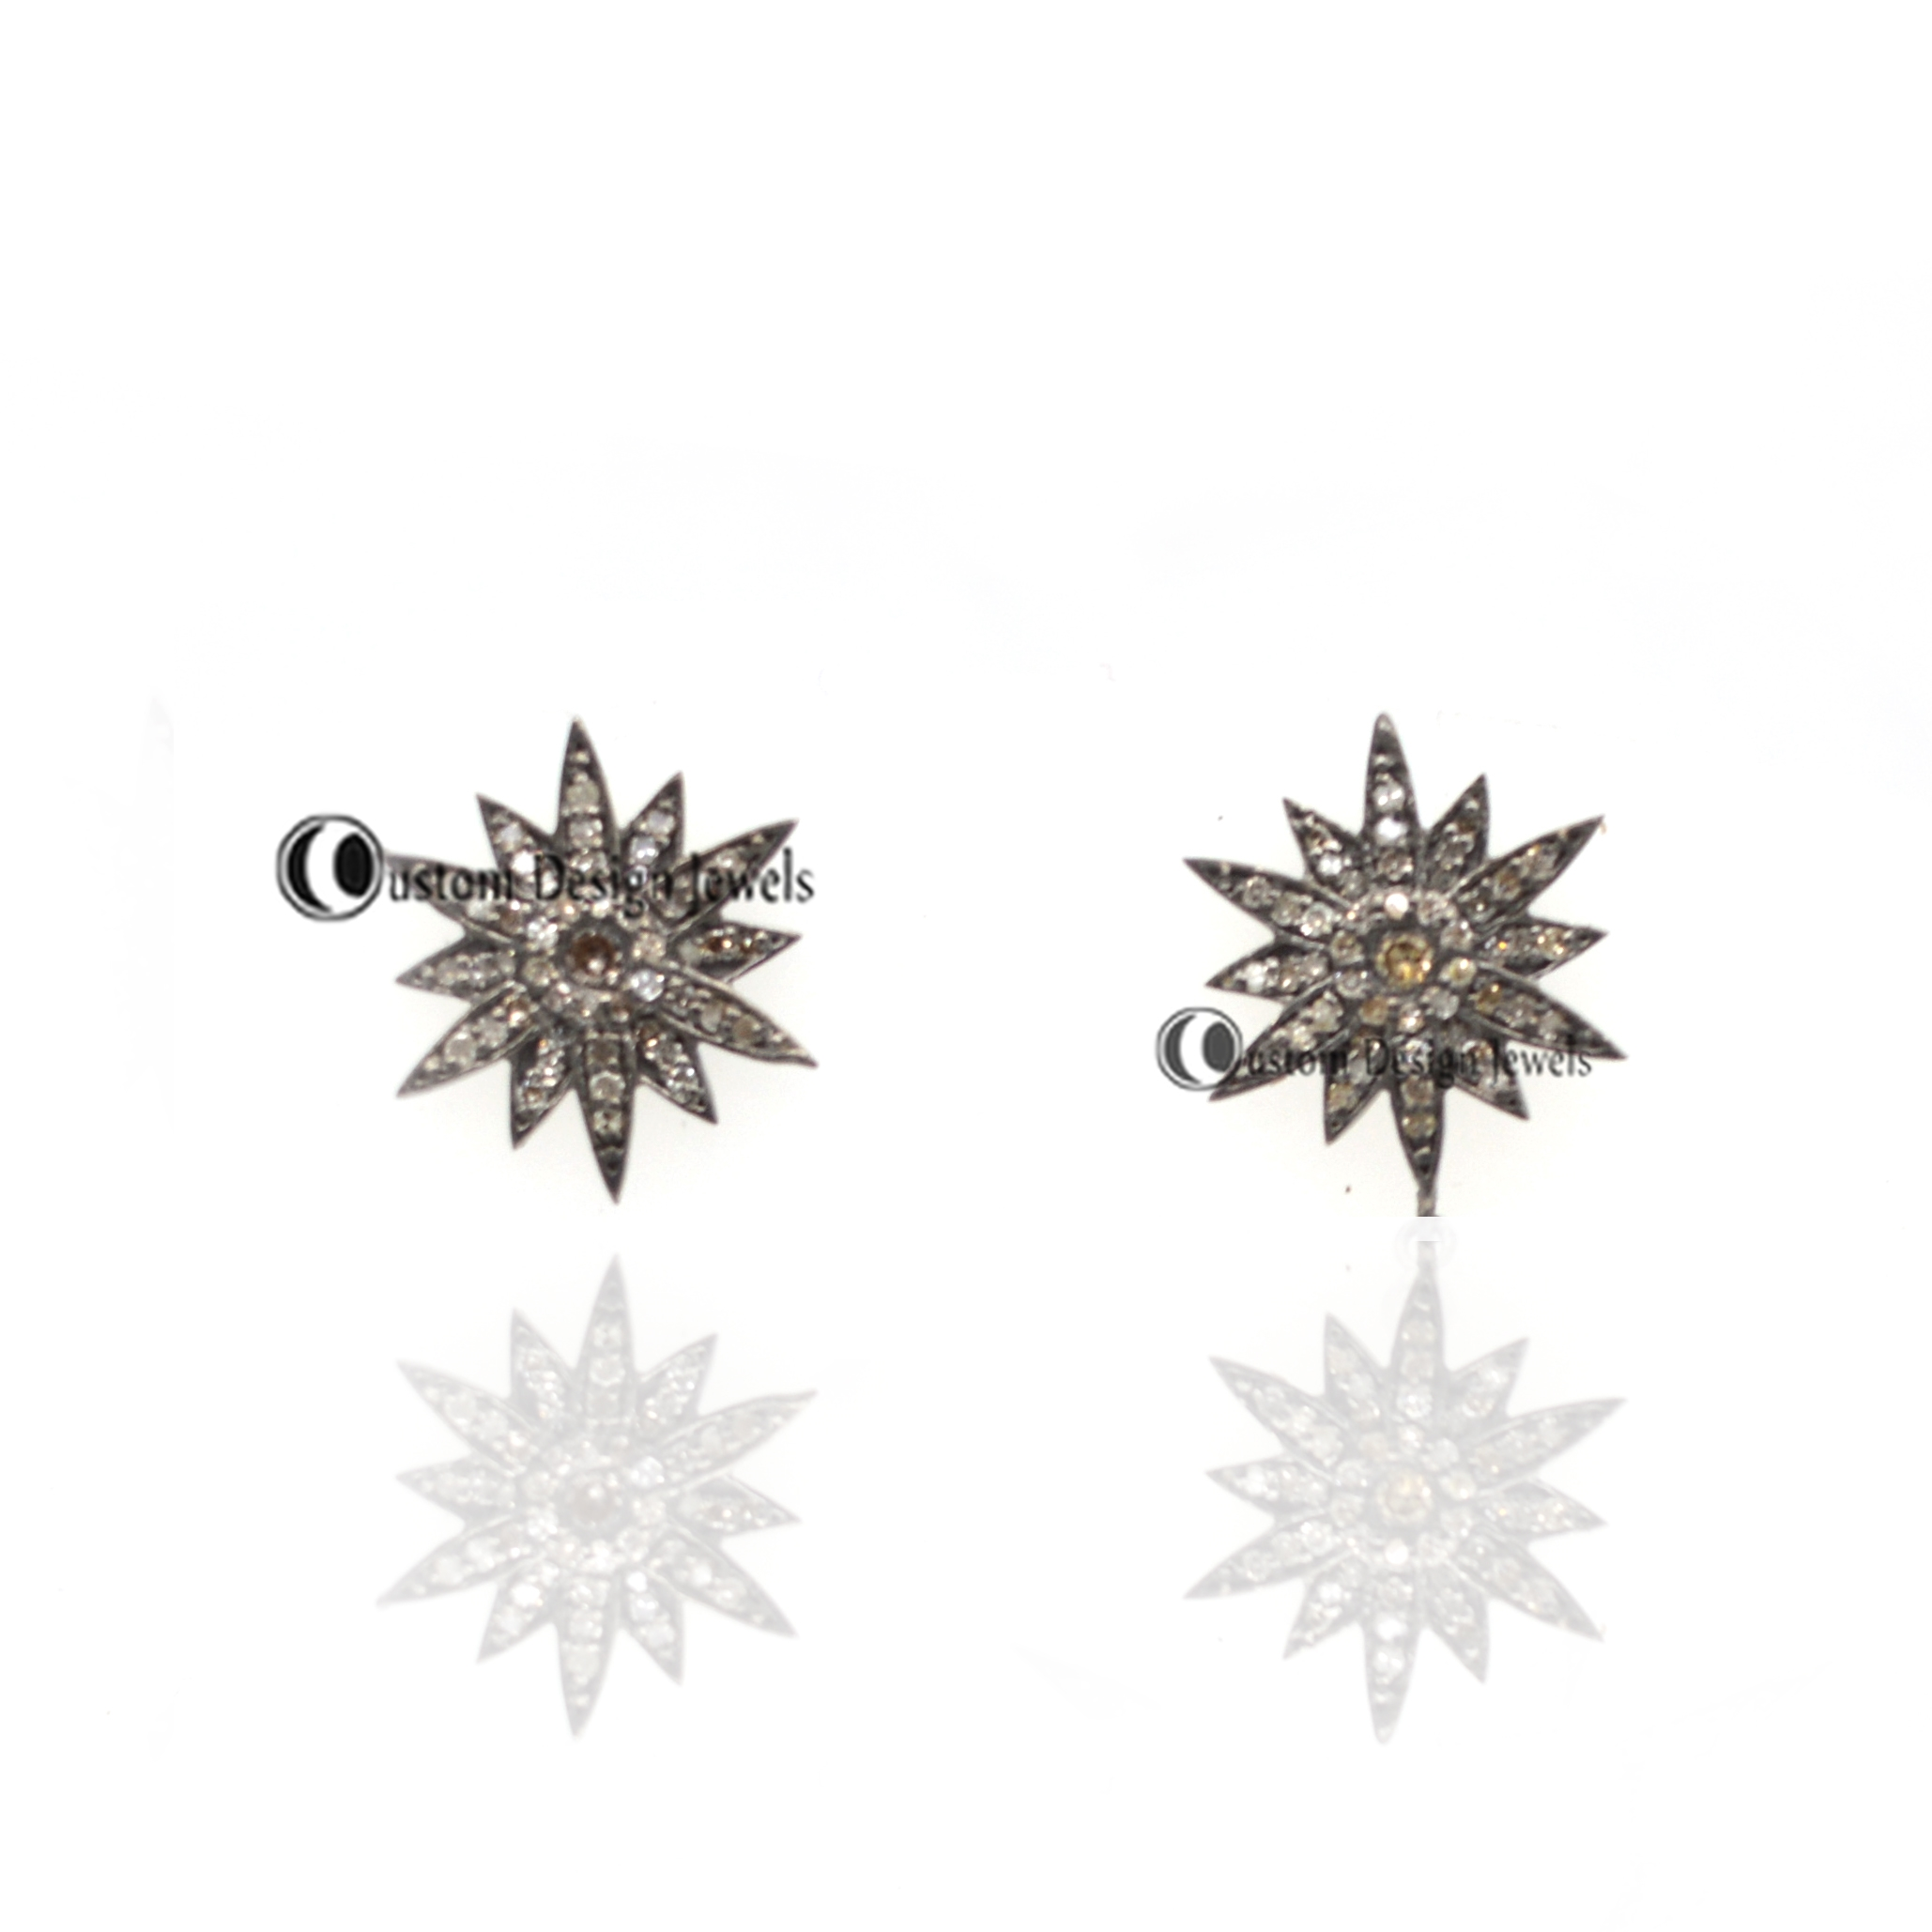 Pave Diamond Starburst Stud Earrings Handmade Studs Star Earring Jewelry